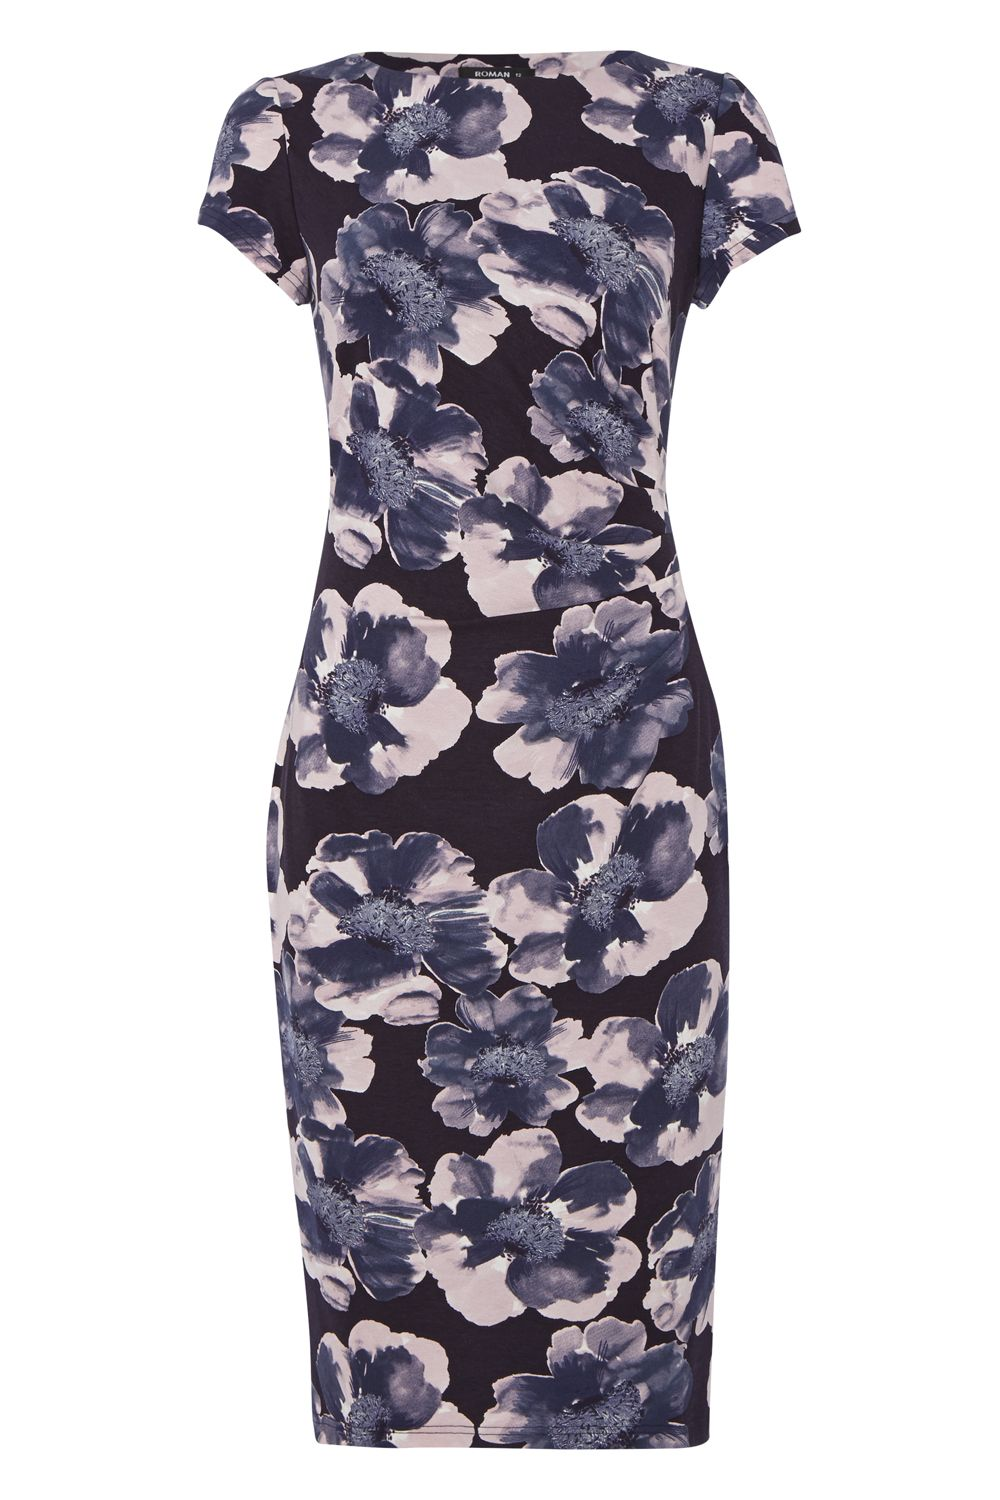 Roman Originals Floral Print Shift Dress, Blue